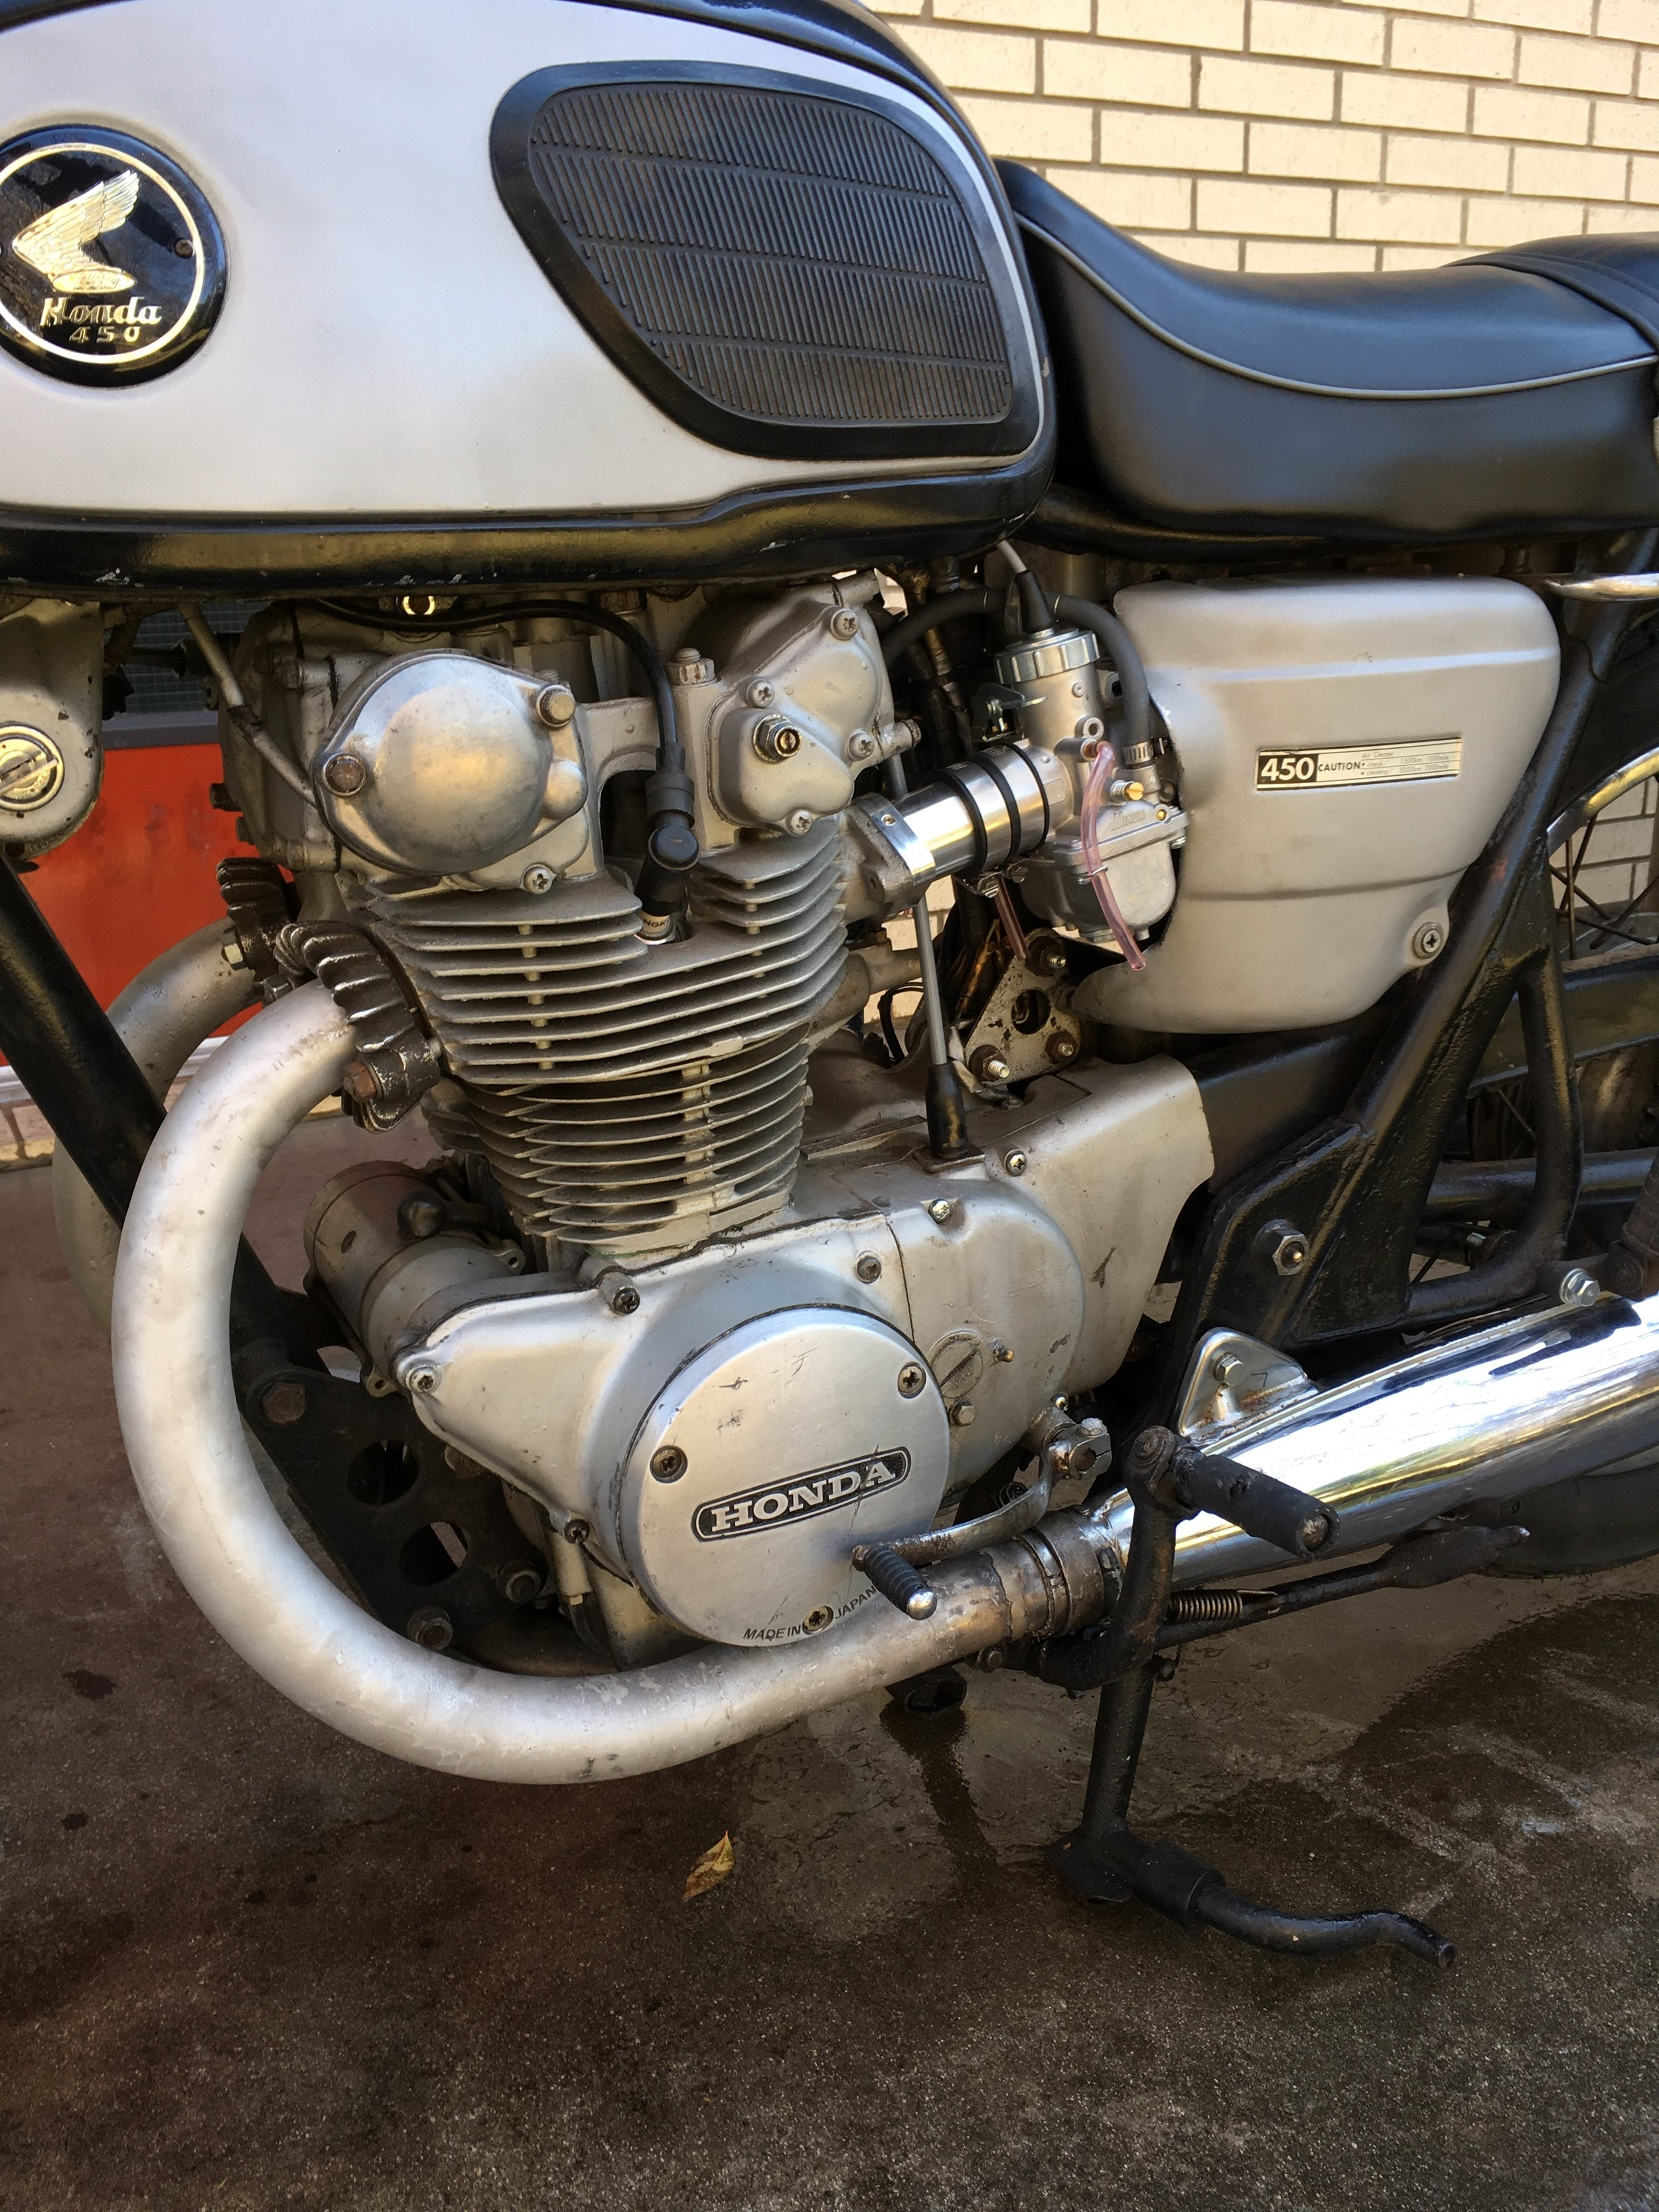 Still pretty rough. A lot of things could be done to make it more correct, but where do you stop? The owner was after a reliable rider, so the roughness allows you to ride with some abandon. The Mikuni 32mm carbs came from Dime City Cycles in a complete kit that had intakes, carbs, filters, and cables. A good bit of trimming was necessary to make the stock covers fit. The bike had an oozing dent in the magneto cover and the twisted shift pedal that went with it that was repaired by a used replacement cover and some heating and bending on the shifter.